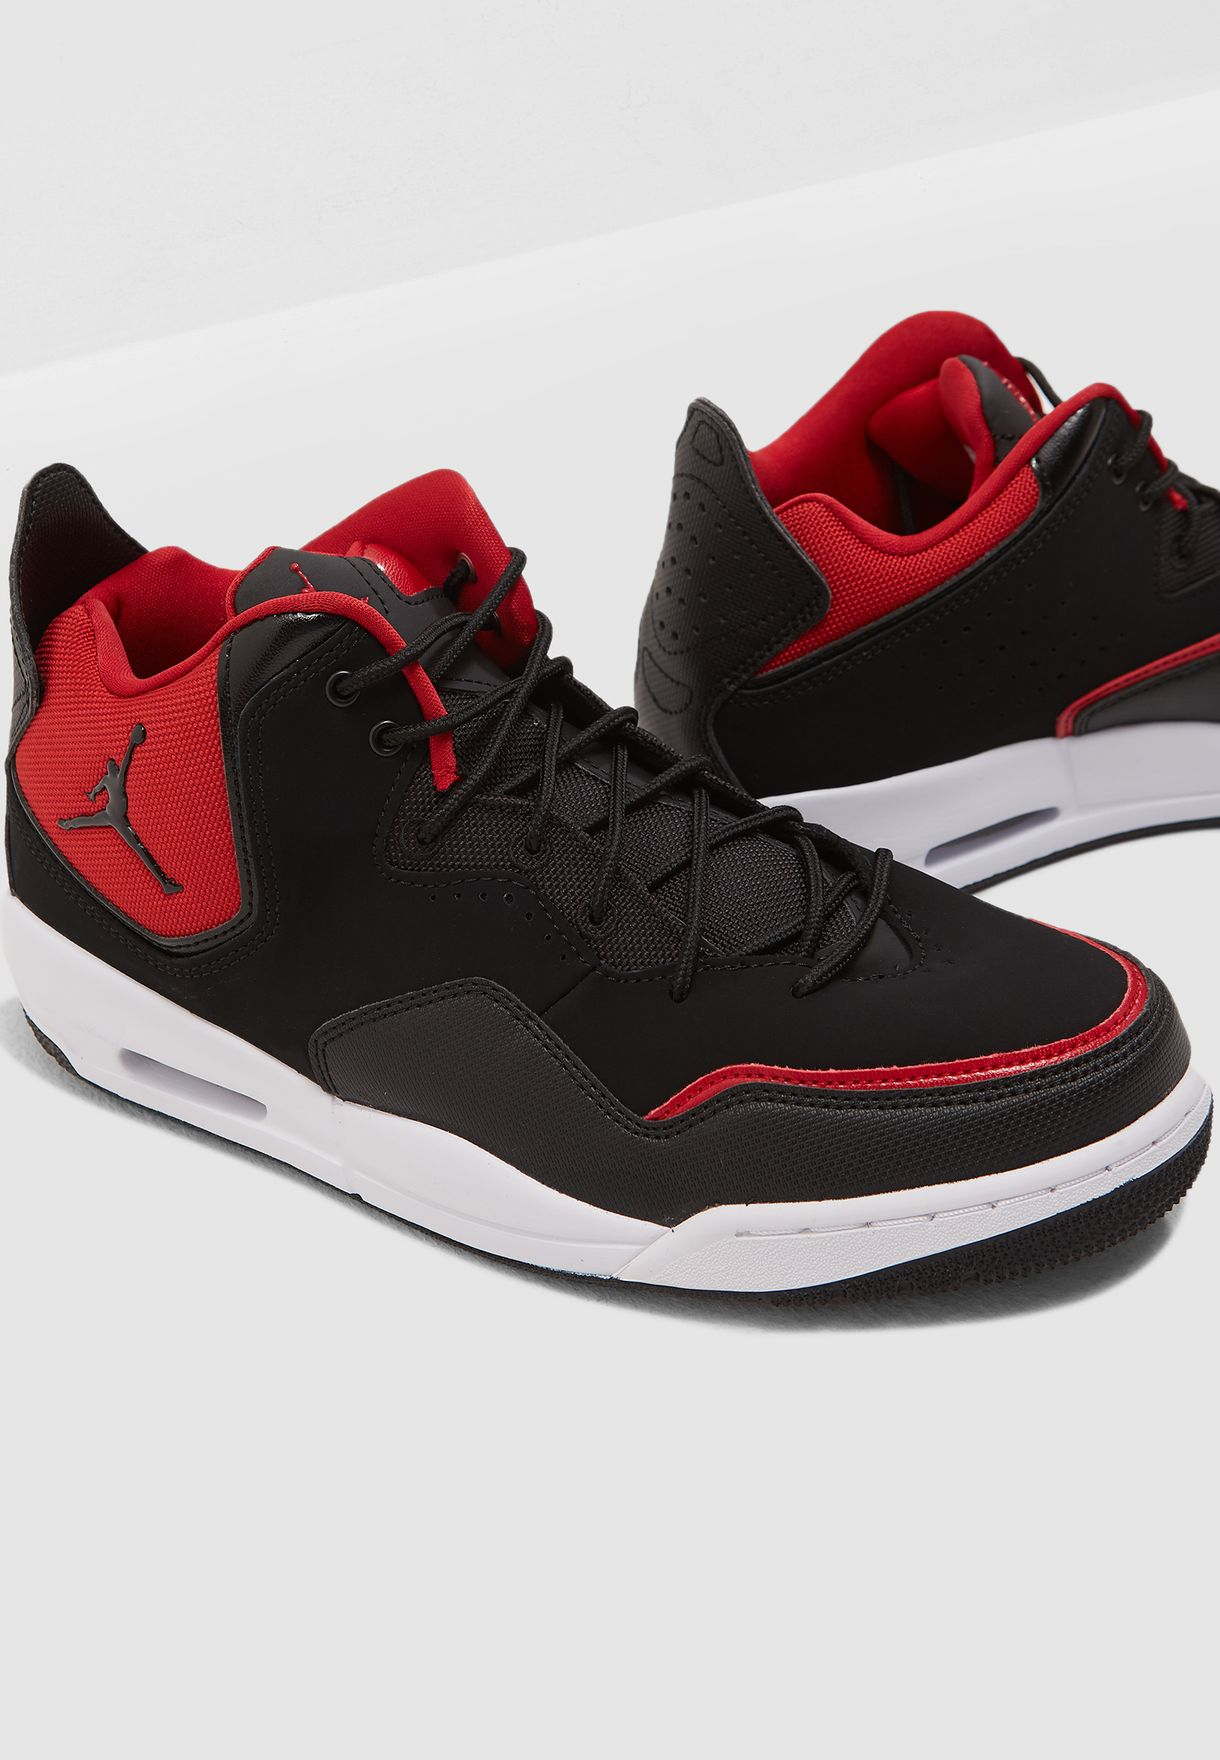 a042c16bd27 Shop Nike black Jordan Courtside 23 AR1000-006 for Men in Bahrain ...